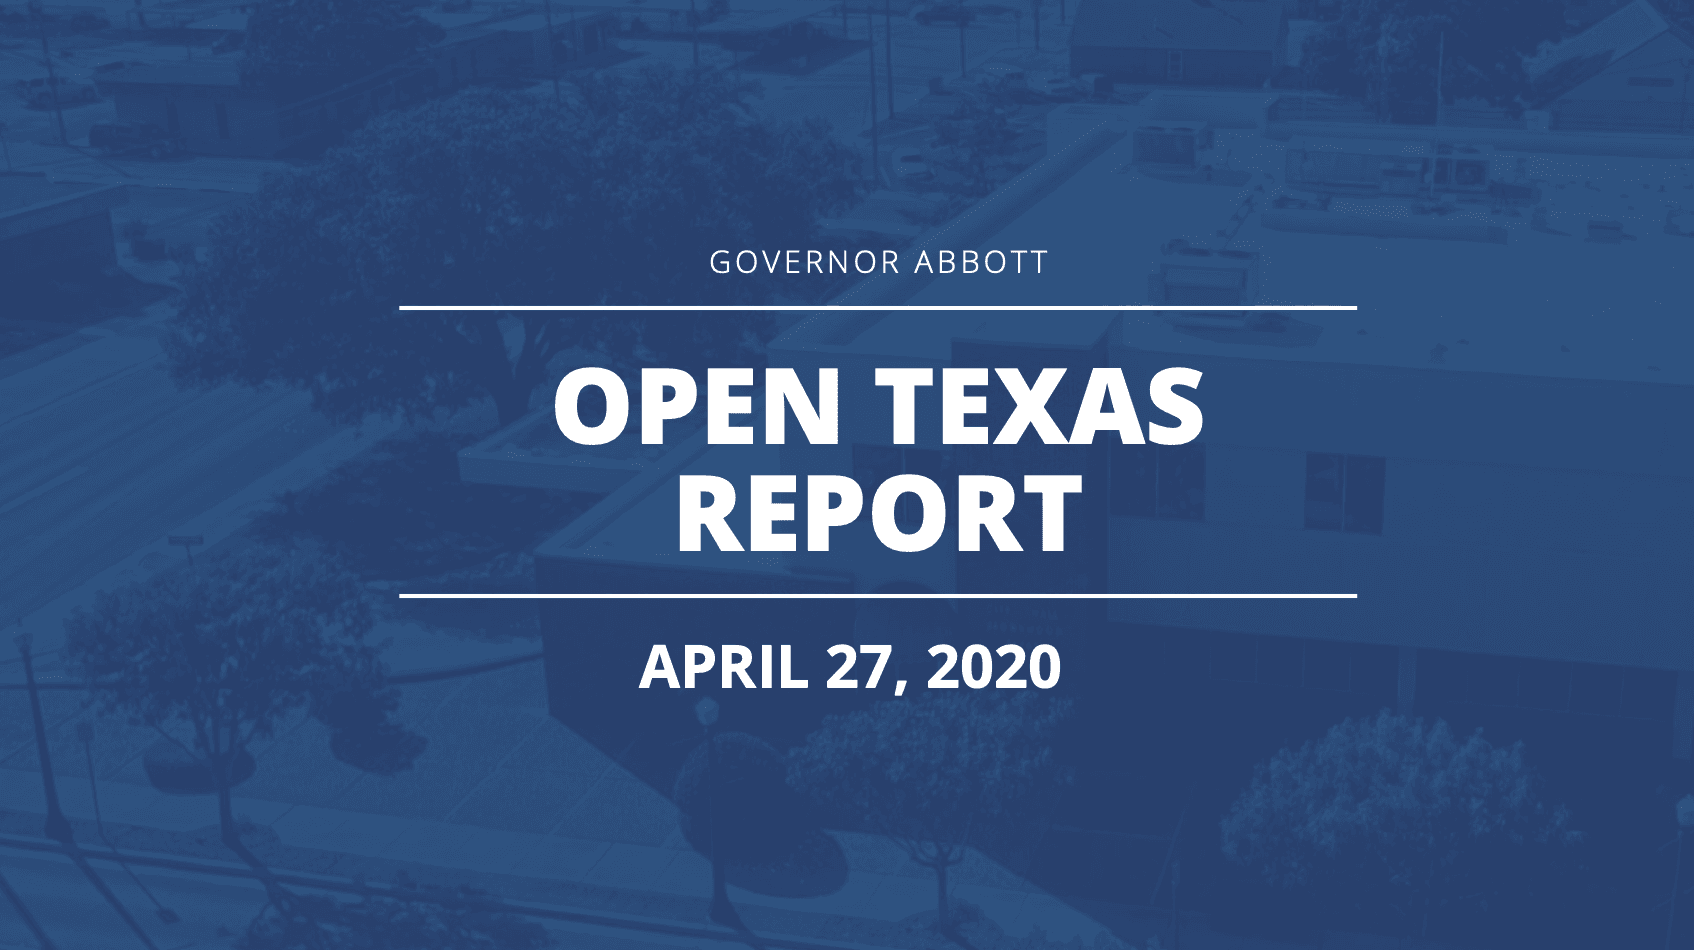 Open Texas Report